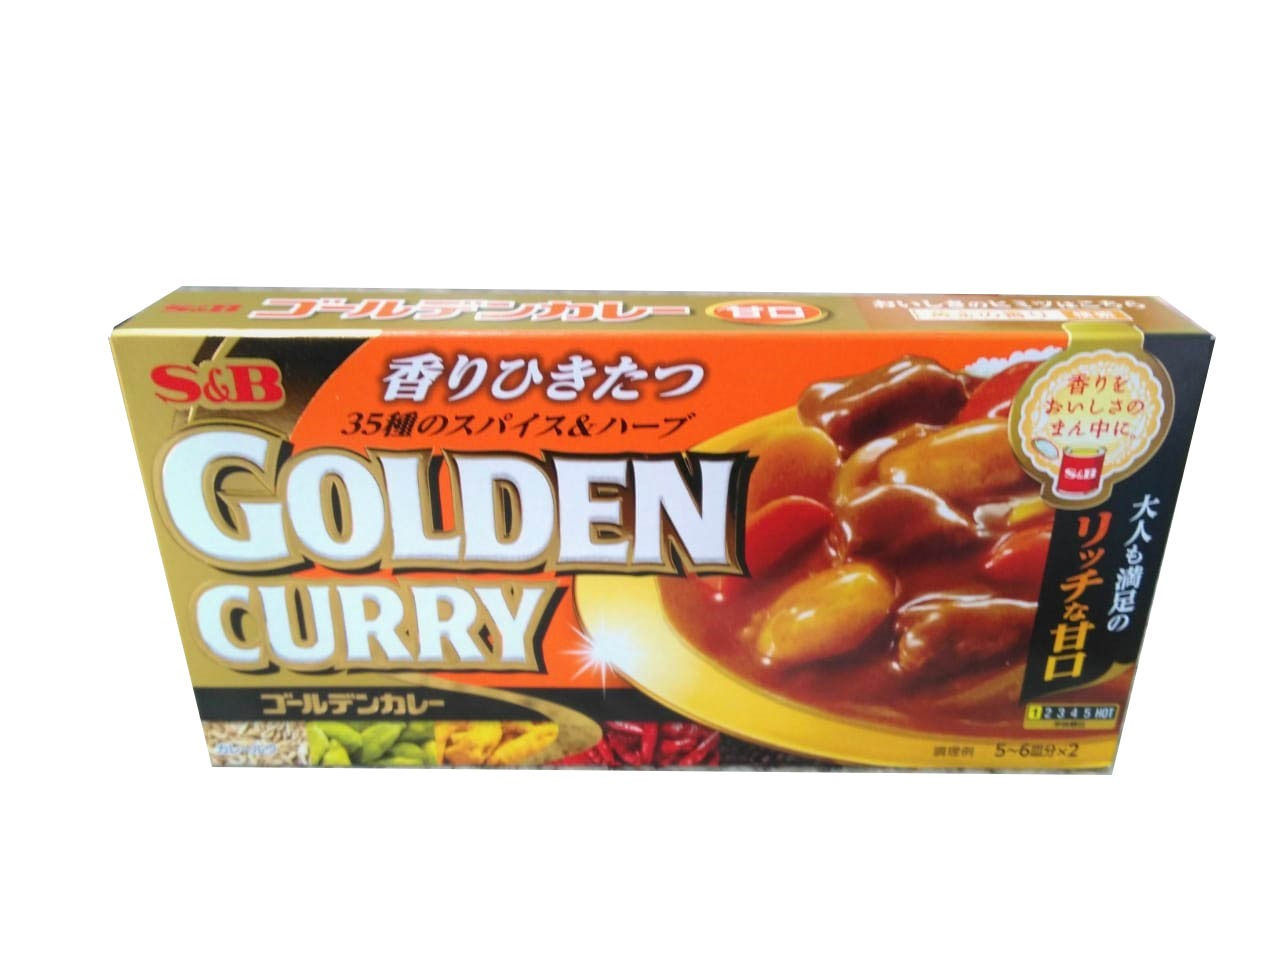 Tempero Golden Curry Mild Amakuchi 198g (Suave) - S&B